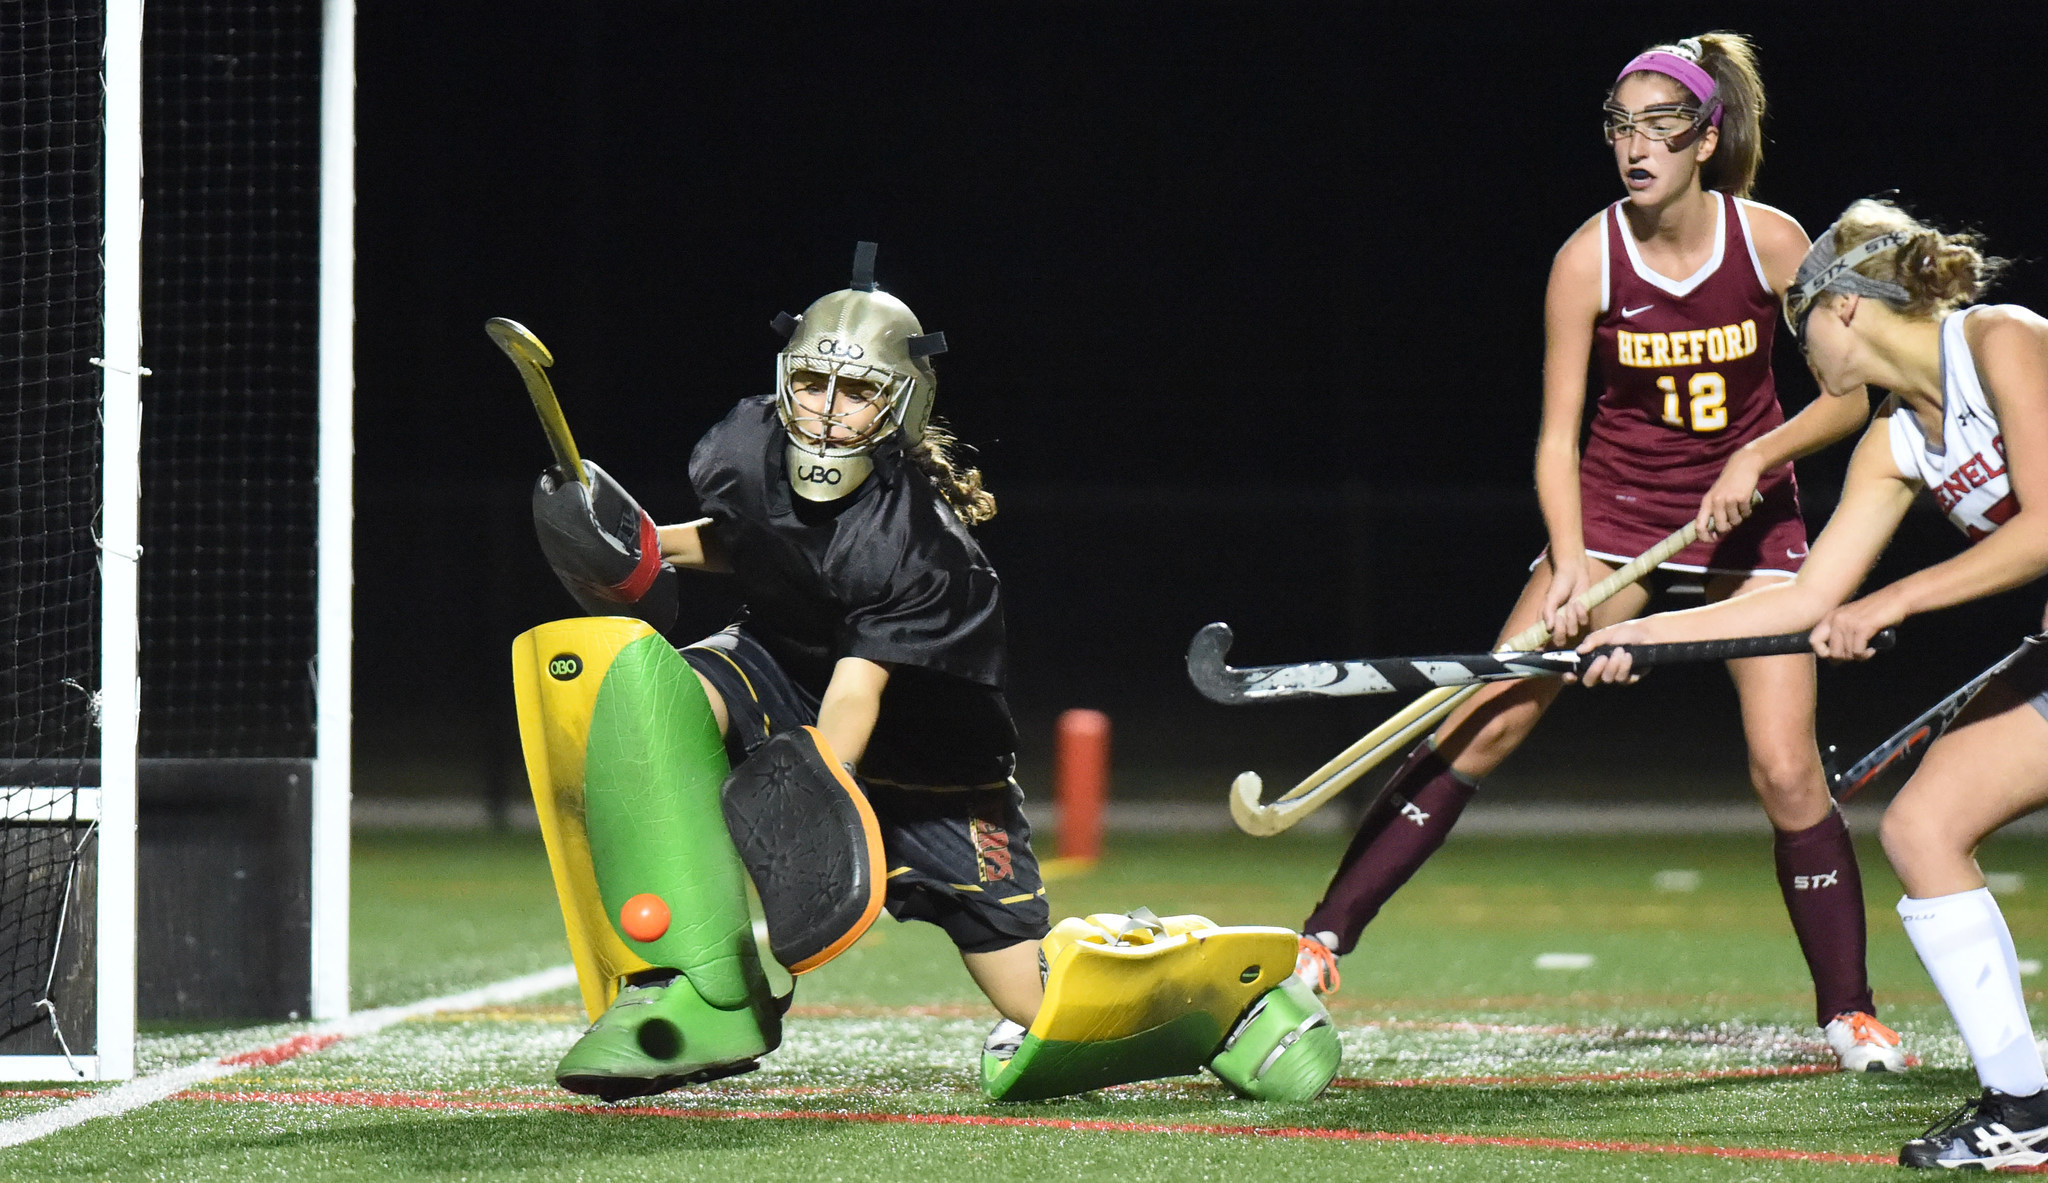 By Putting Field Hockey First Goalkeeper Camryn Kelbaugh Aiming To